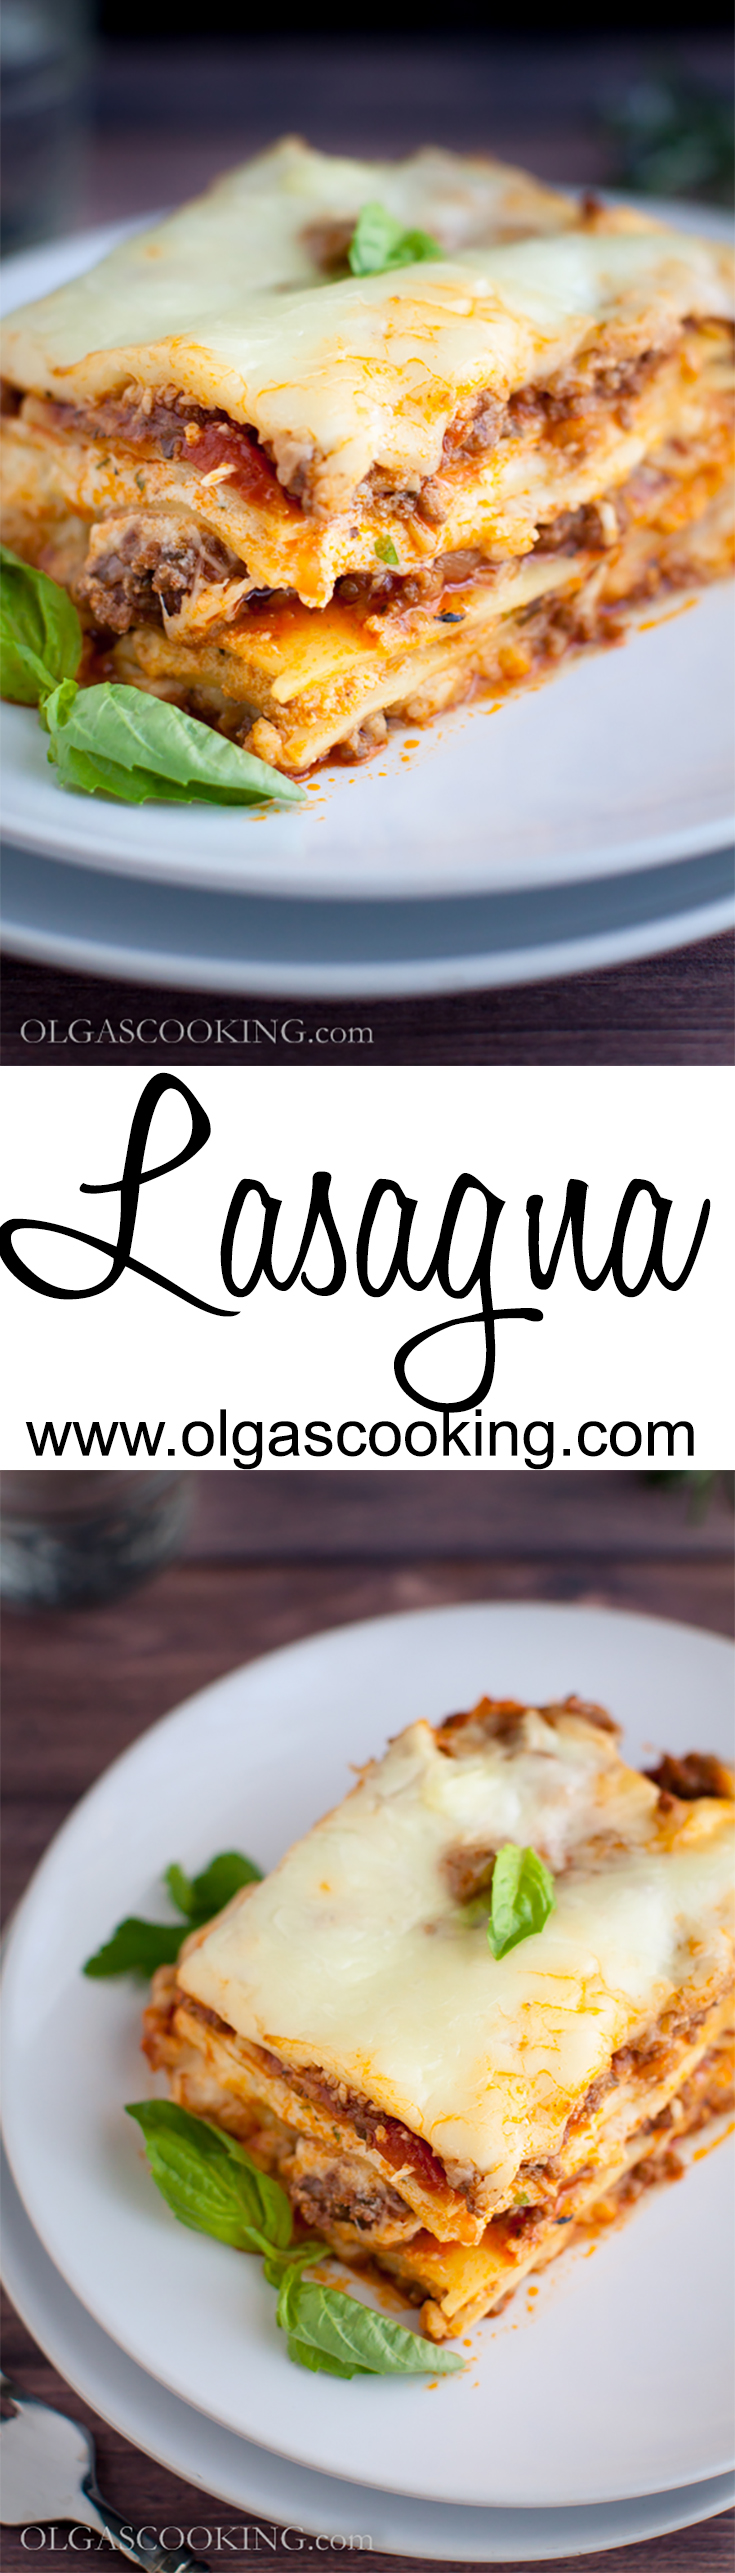 simple and delicious lasagna recipe from scratch